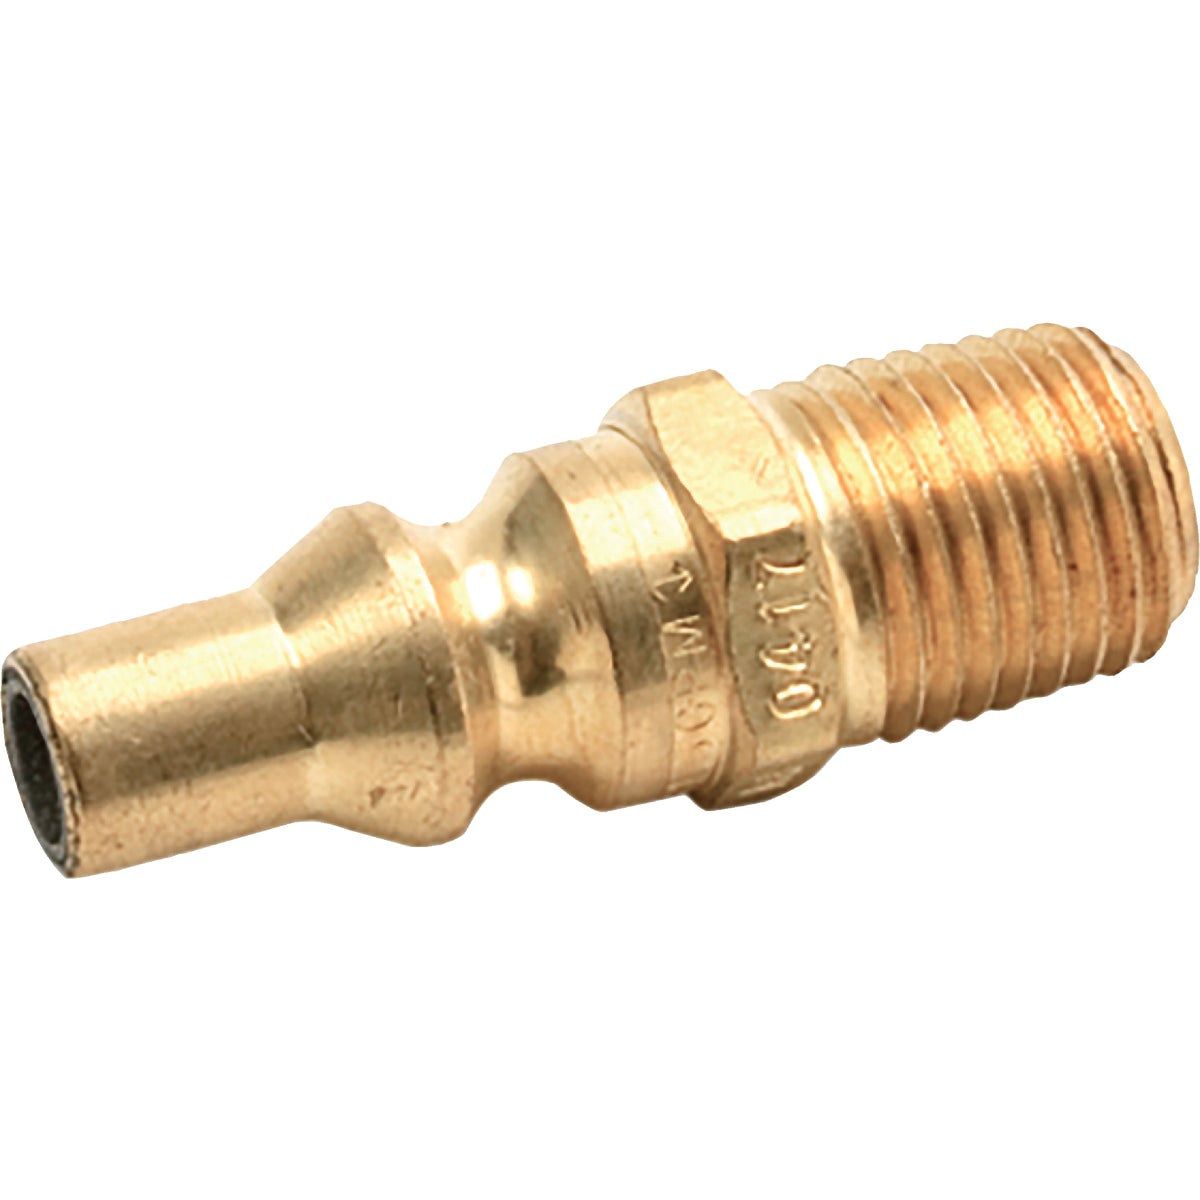 GAS FULL FLOW PLUG - F276281 by Mr Heater Corp